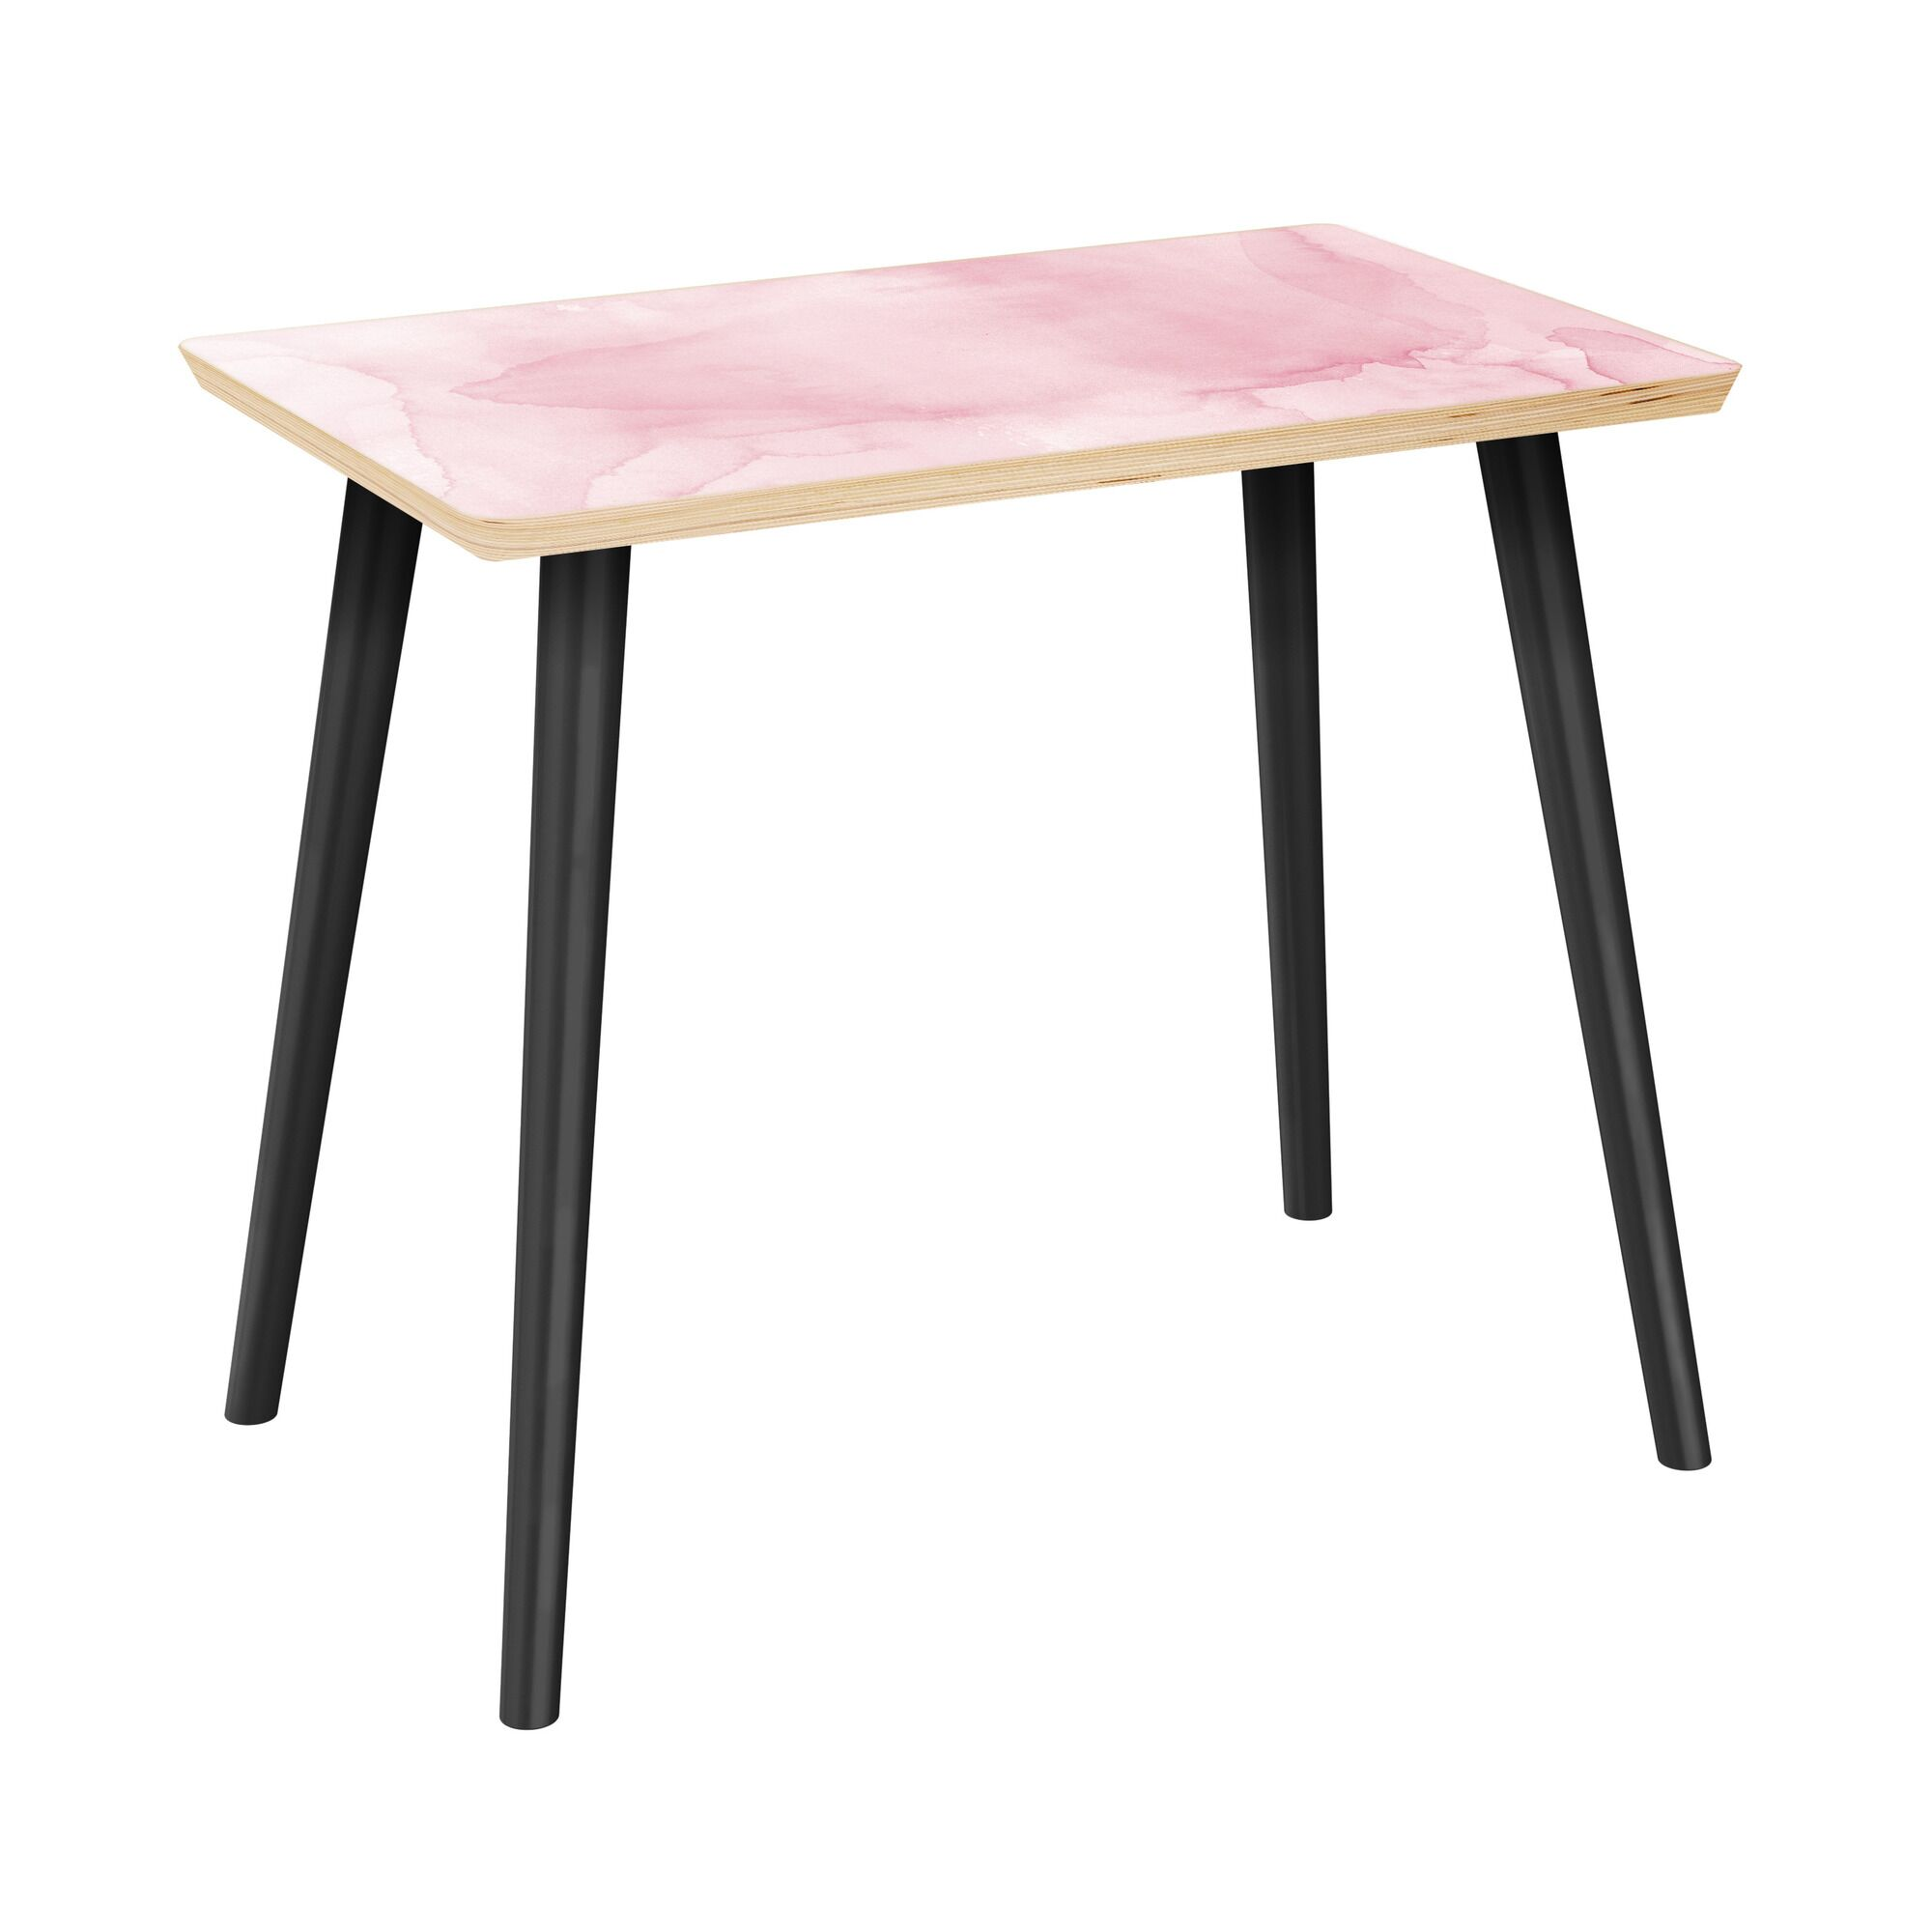 Jaqueline End Table Table Top Boarder Color: Natural, Table Base Color: Black, Table Top Color: Gray/Black